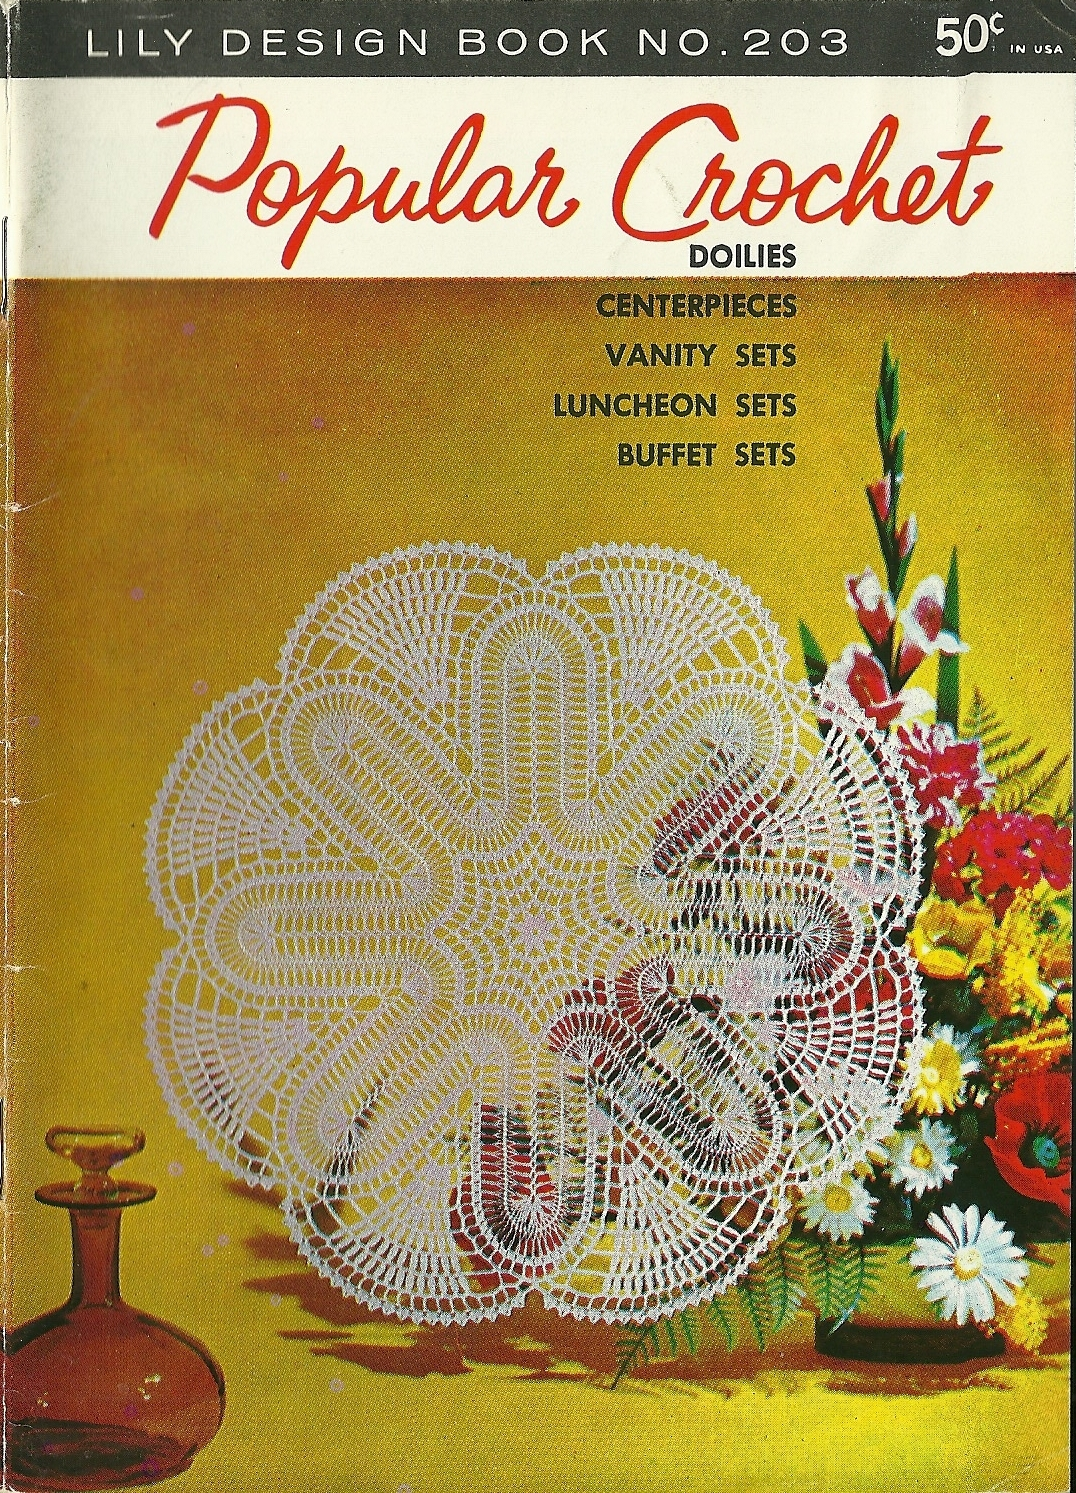 Popular Crochet Lily Design Book No. 203